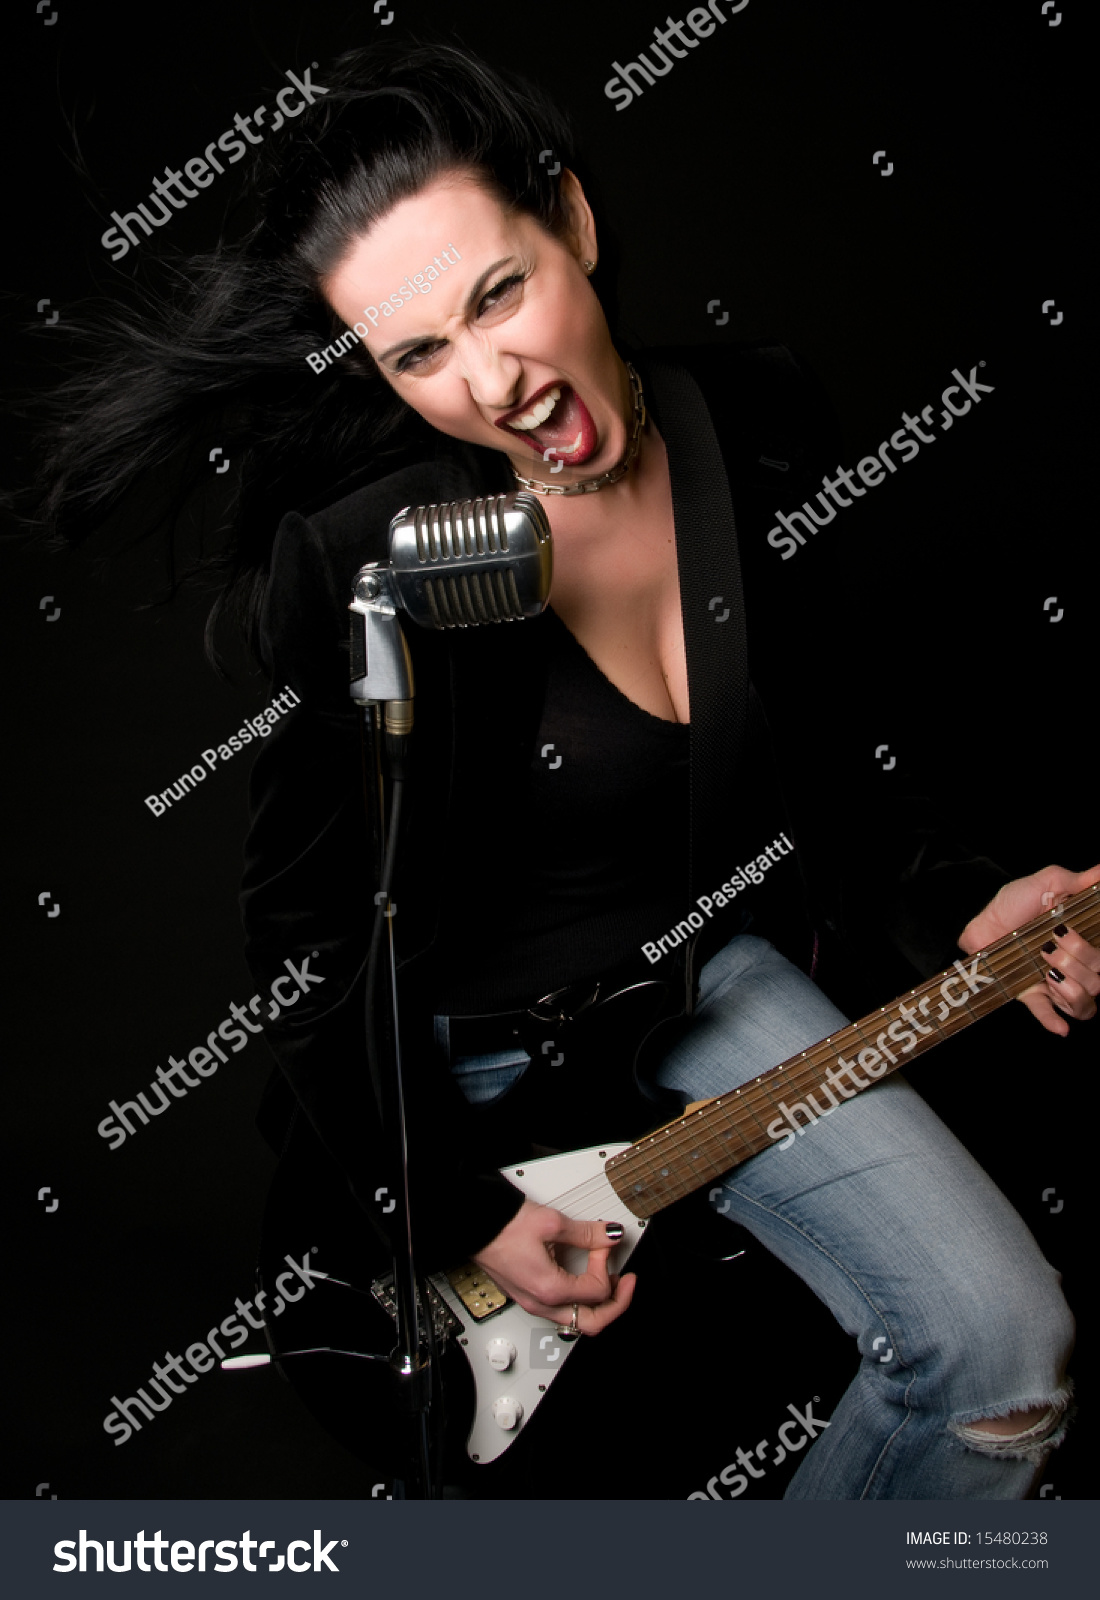 Female Musician Performing With Guitar And Retro Mic